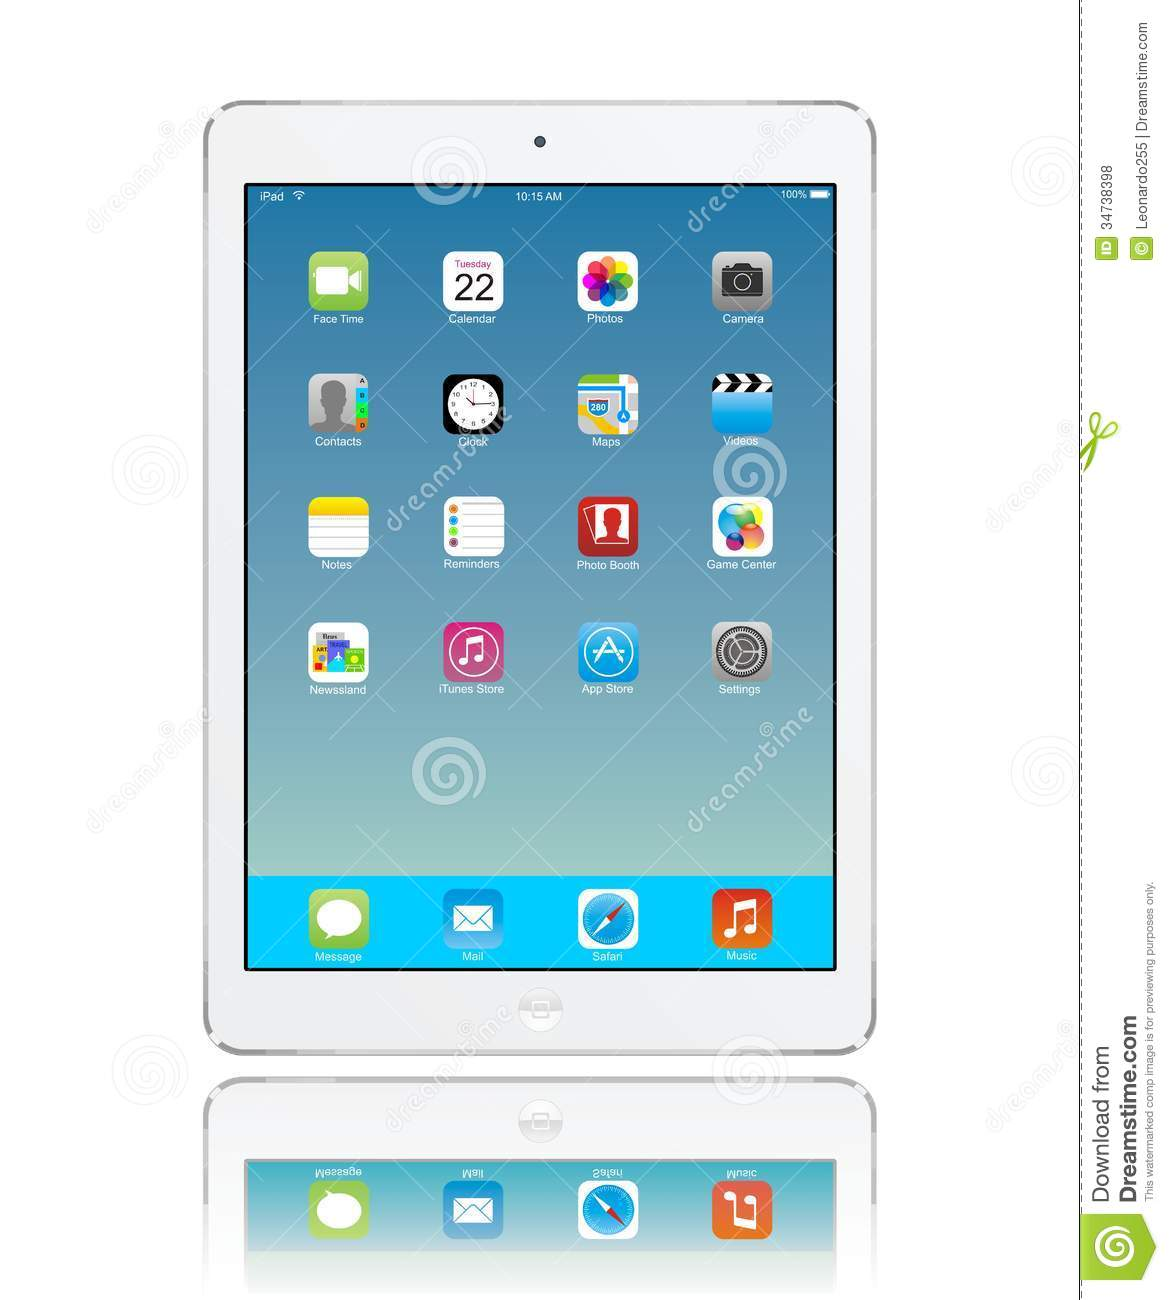 16 White IPad Icons Images